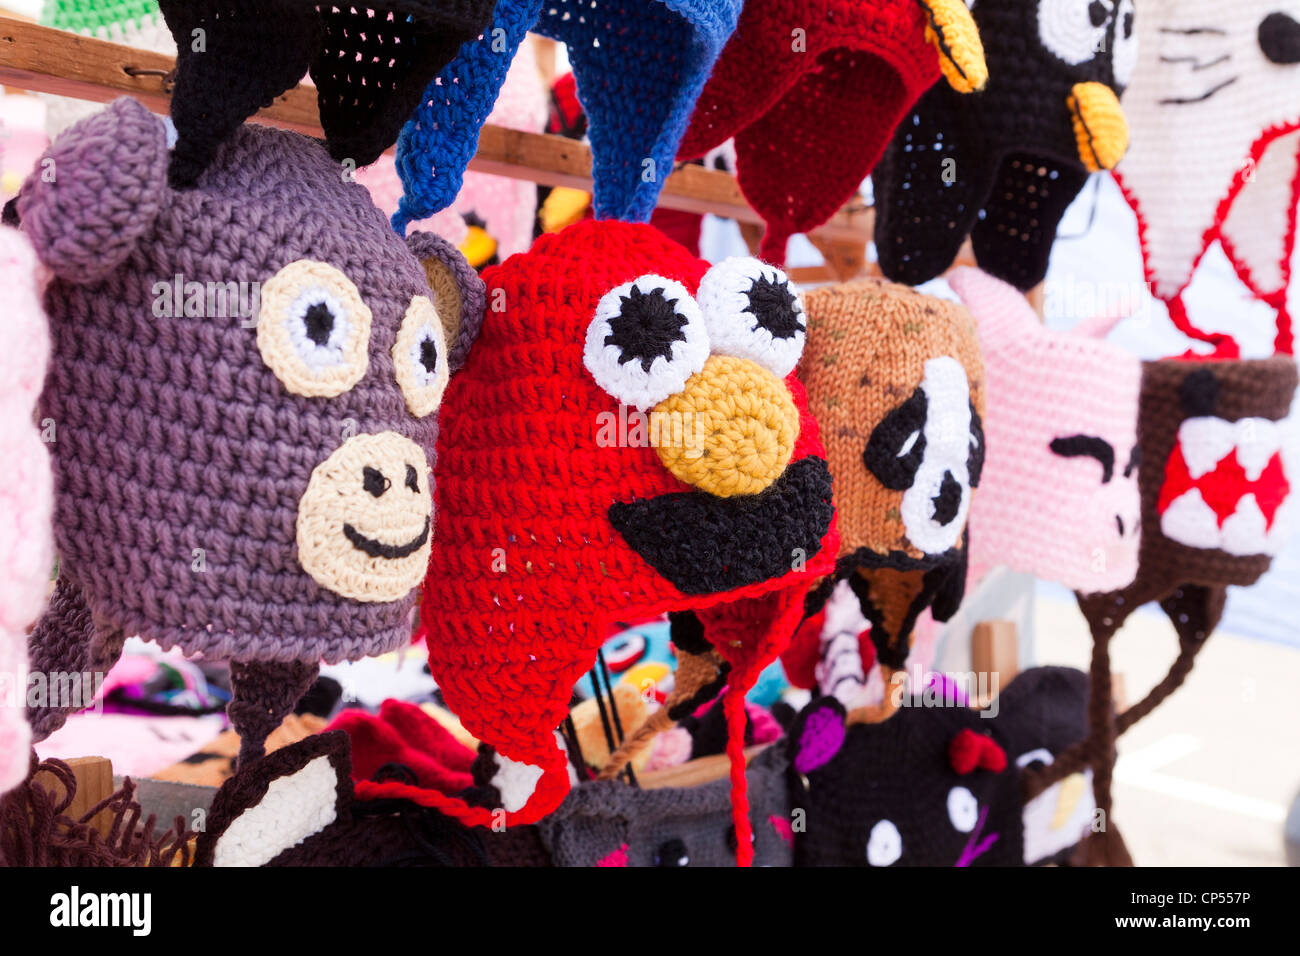 Assorted character knit trapper hats - Stock Image